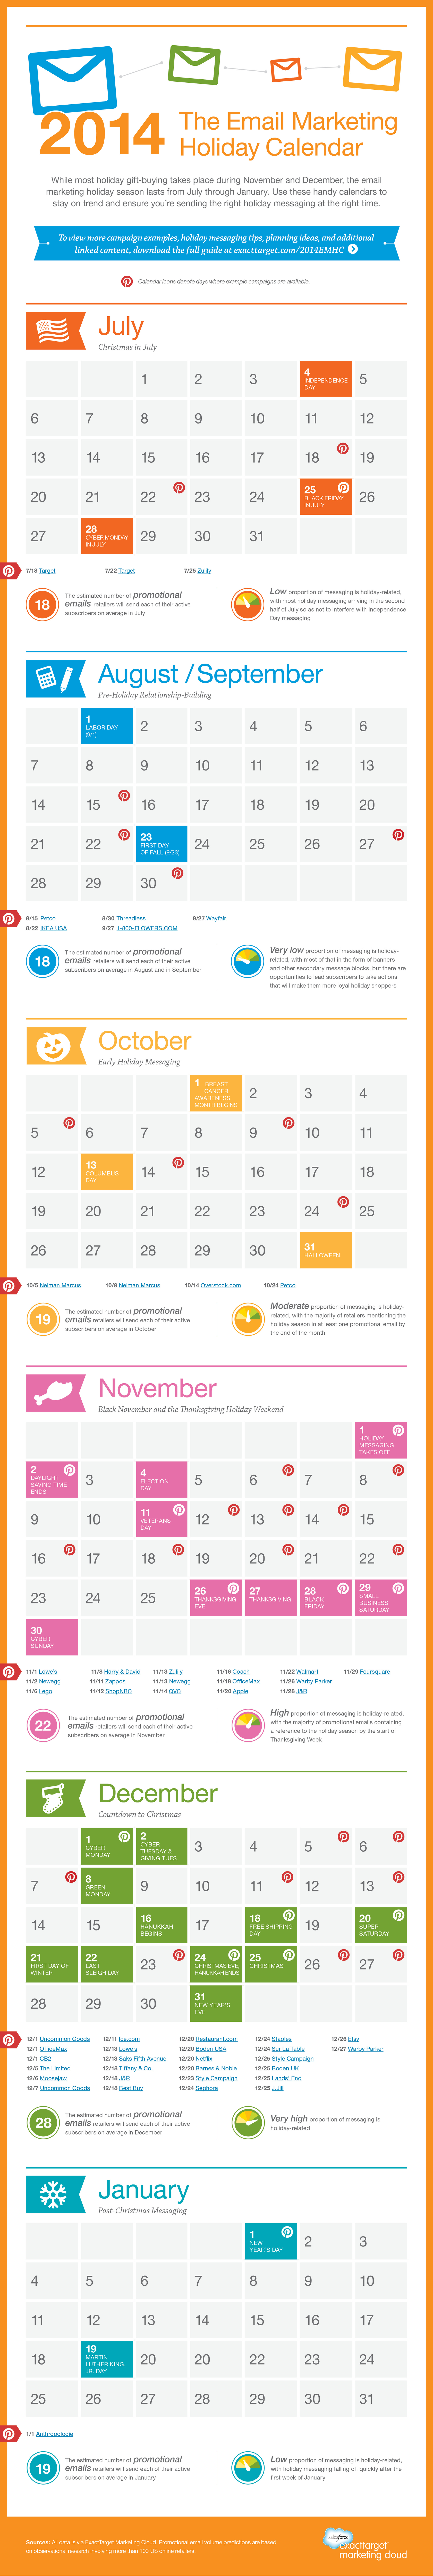 The 2014 Email Marketing Holiday Calendar Trends, Tips. Louisville Ky Internet Providers. Keene State College New Hampshire. Offshore Investment Advice Immigration In Uk. Gastric Bypass San Francisco Store It Cold. The Best Home Entertainment System. Financial Adviser School Absolute Carpet Care. Military Spouse Financial Aid For College. Do You Need Credit To Get A Cell Phone Plan